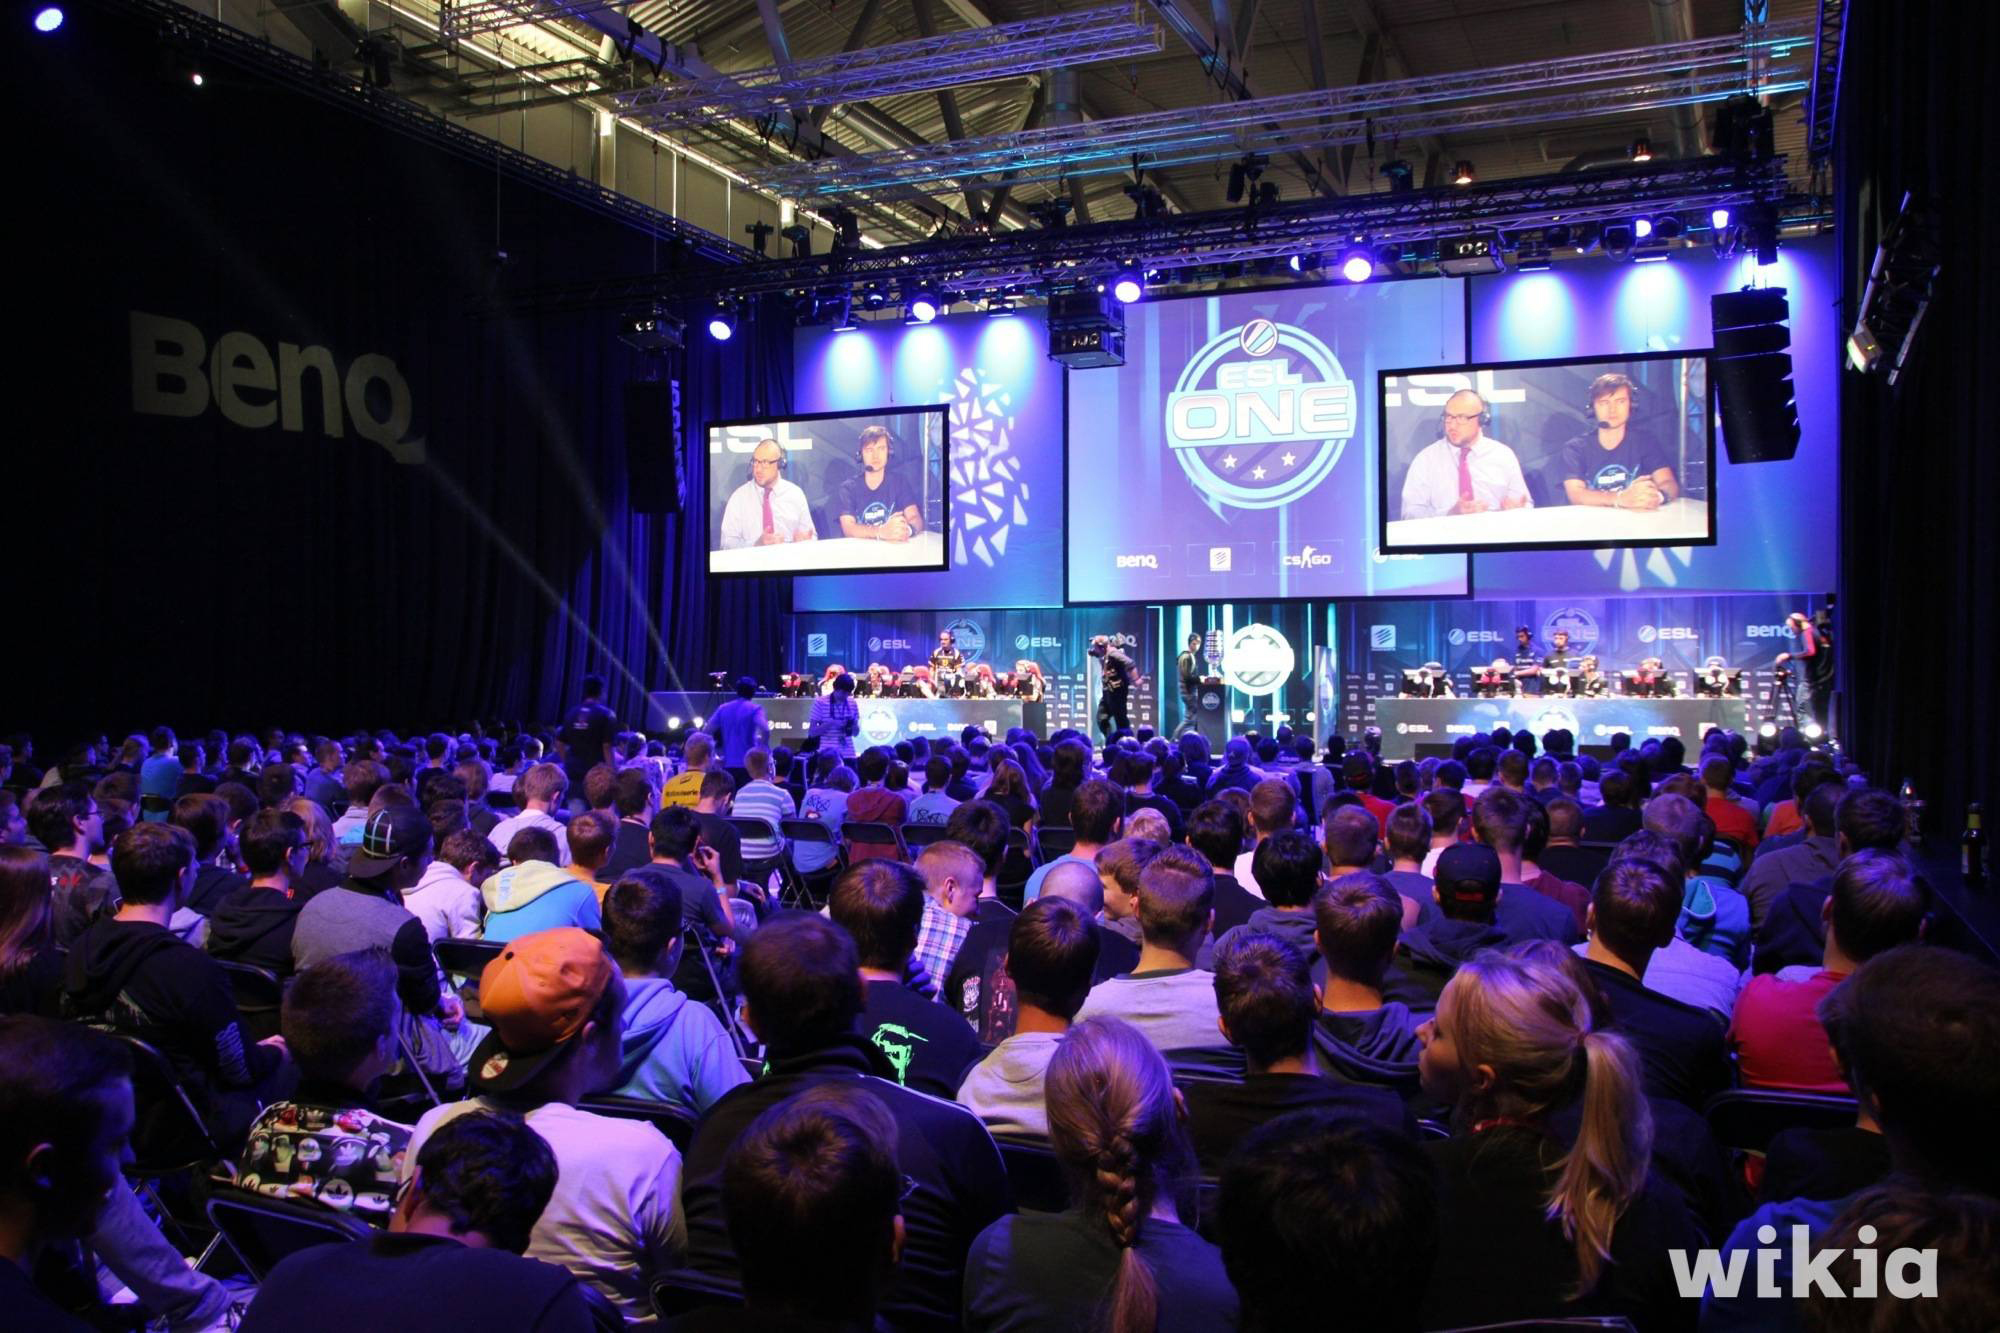 A crowd of fans watches intently for the action at a CS:GO tournament. (credit: Courtesy of Tim Bartel via Flickr Creative Commons)